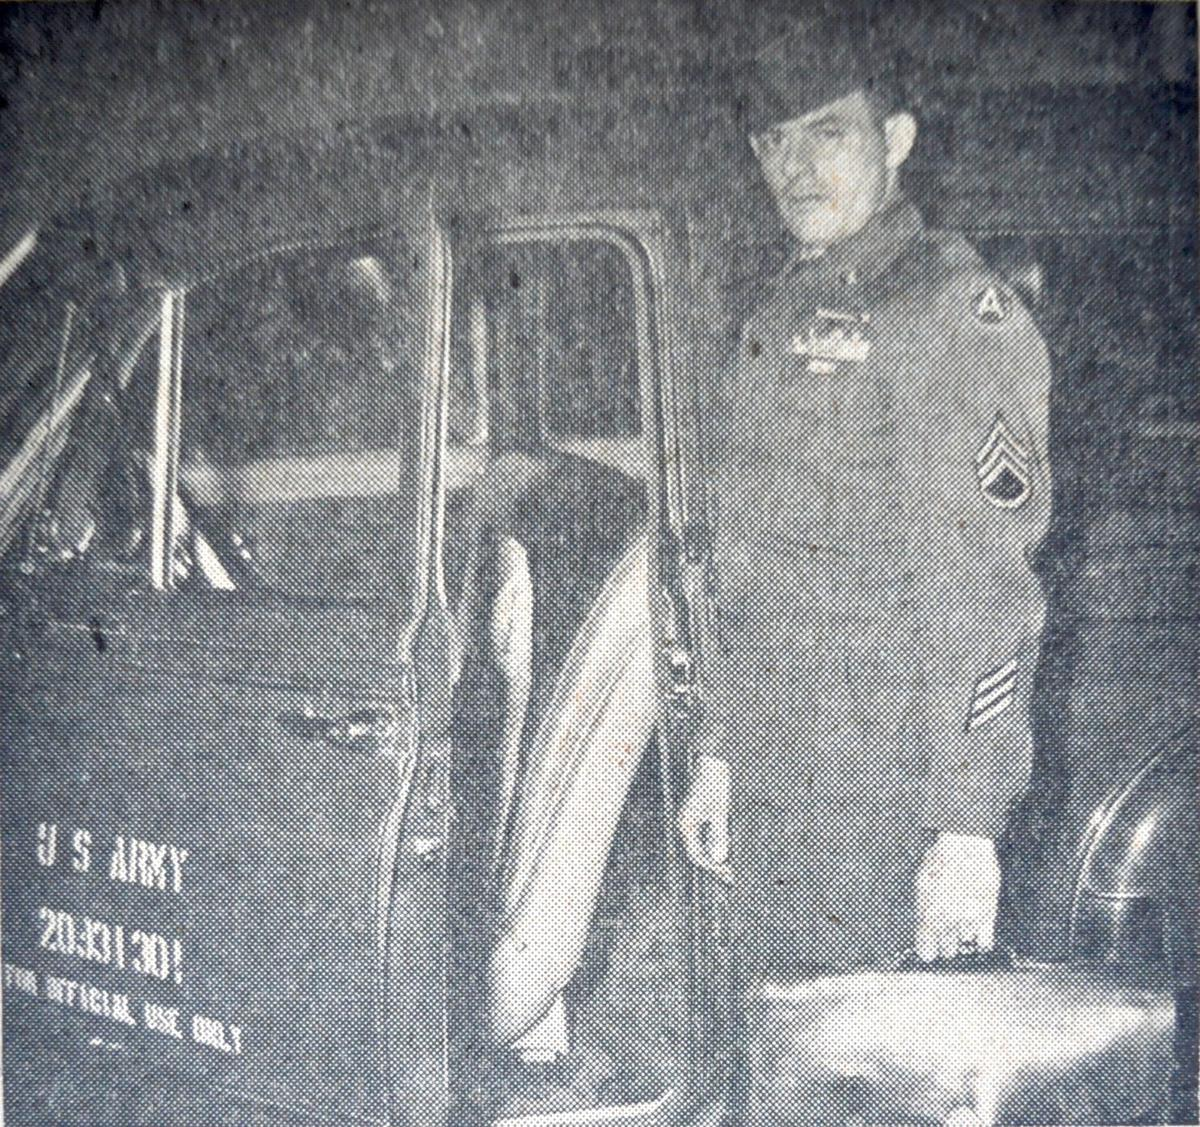 Sgt. Willie Younce, Army mailman, WWII and Korean War veteran